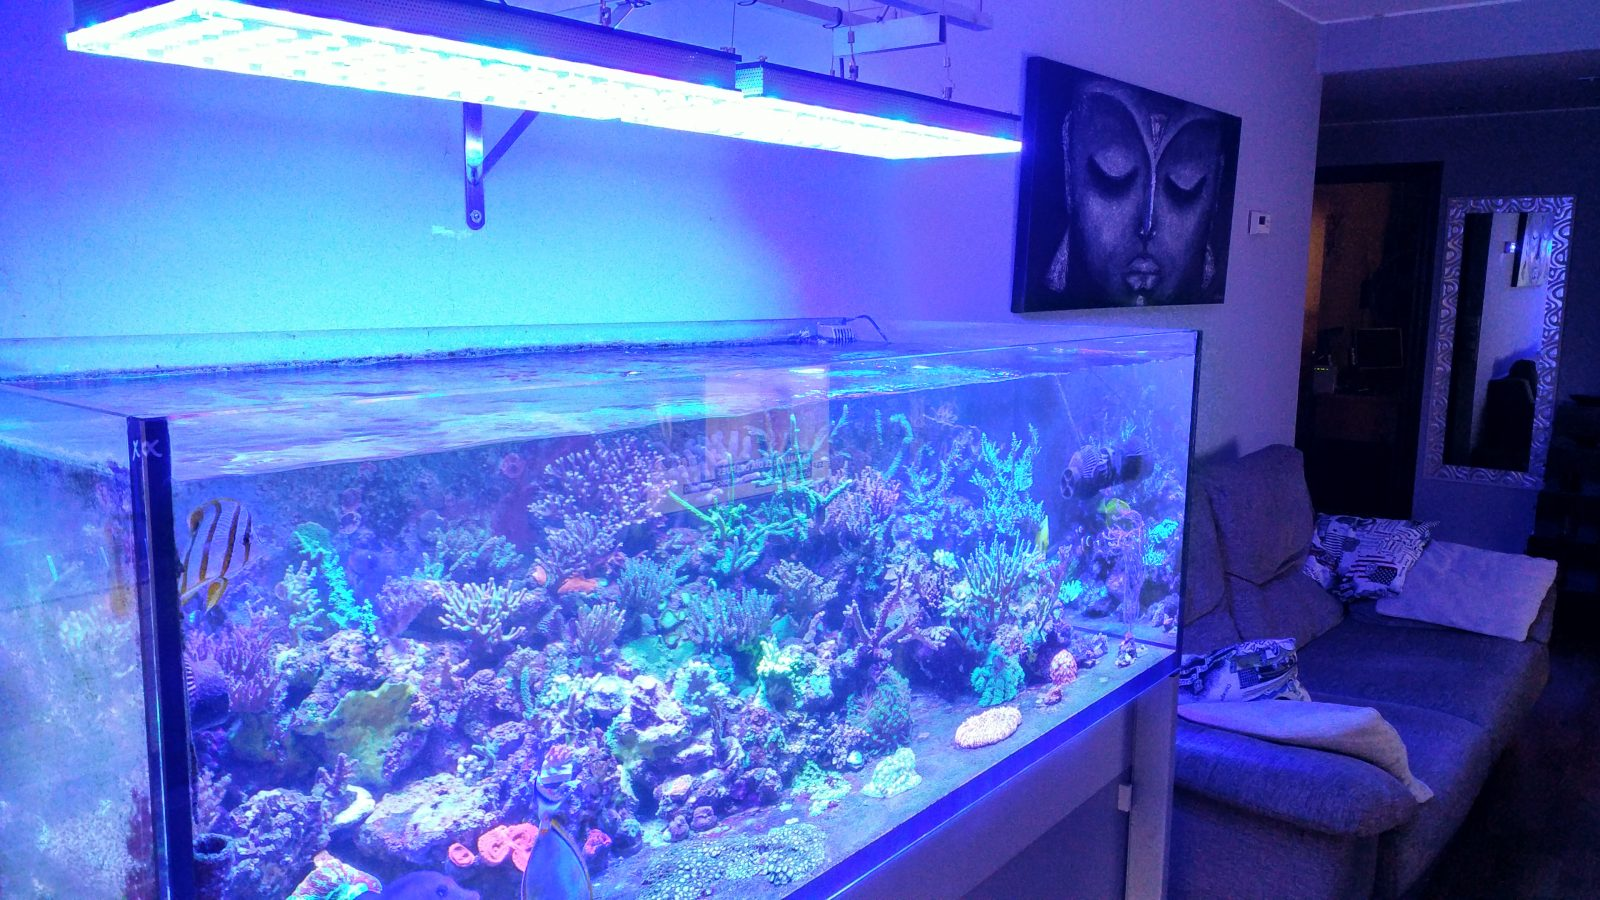 Best-aquarium-LED-light-2017-Orphek